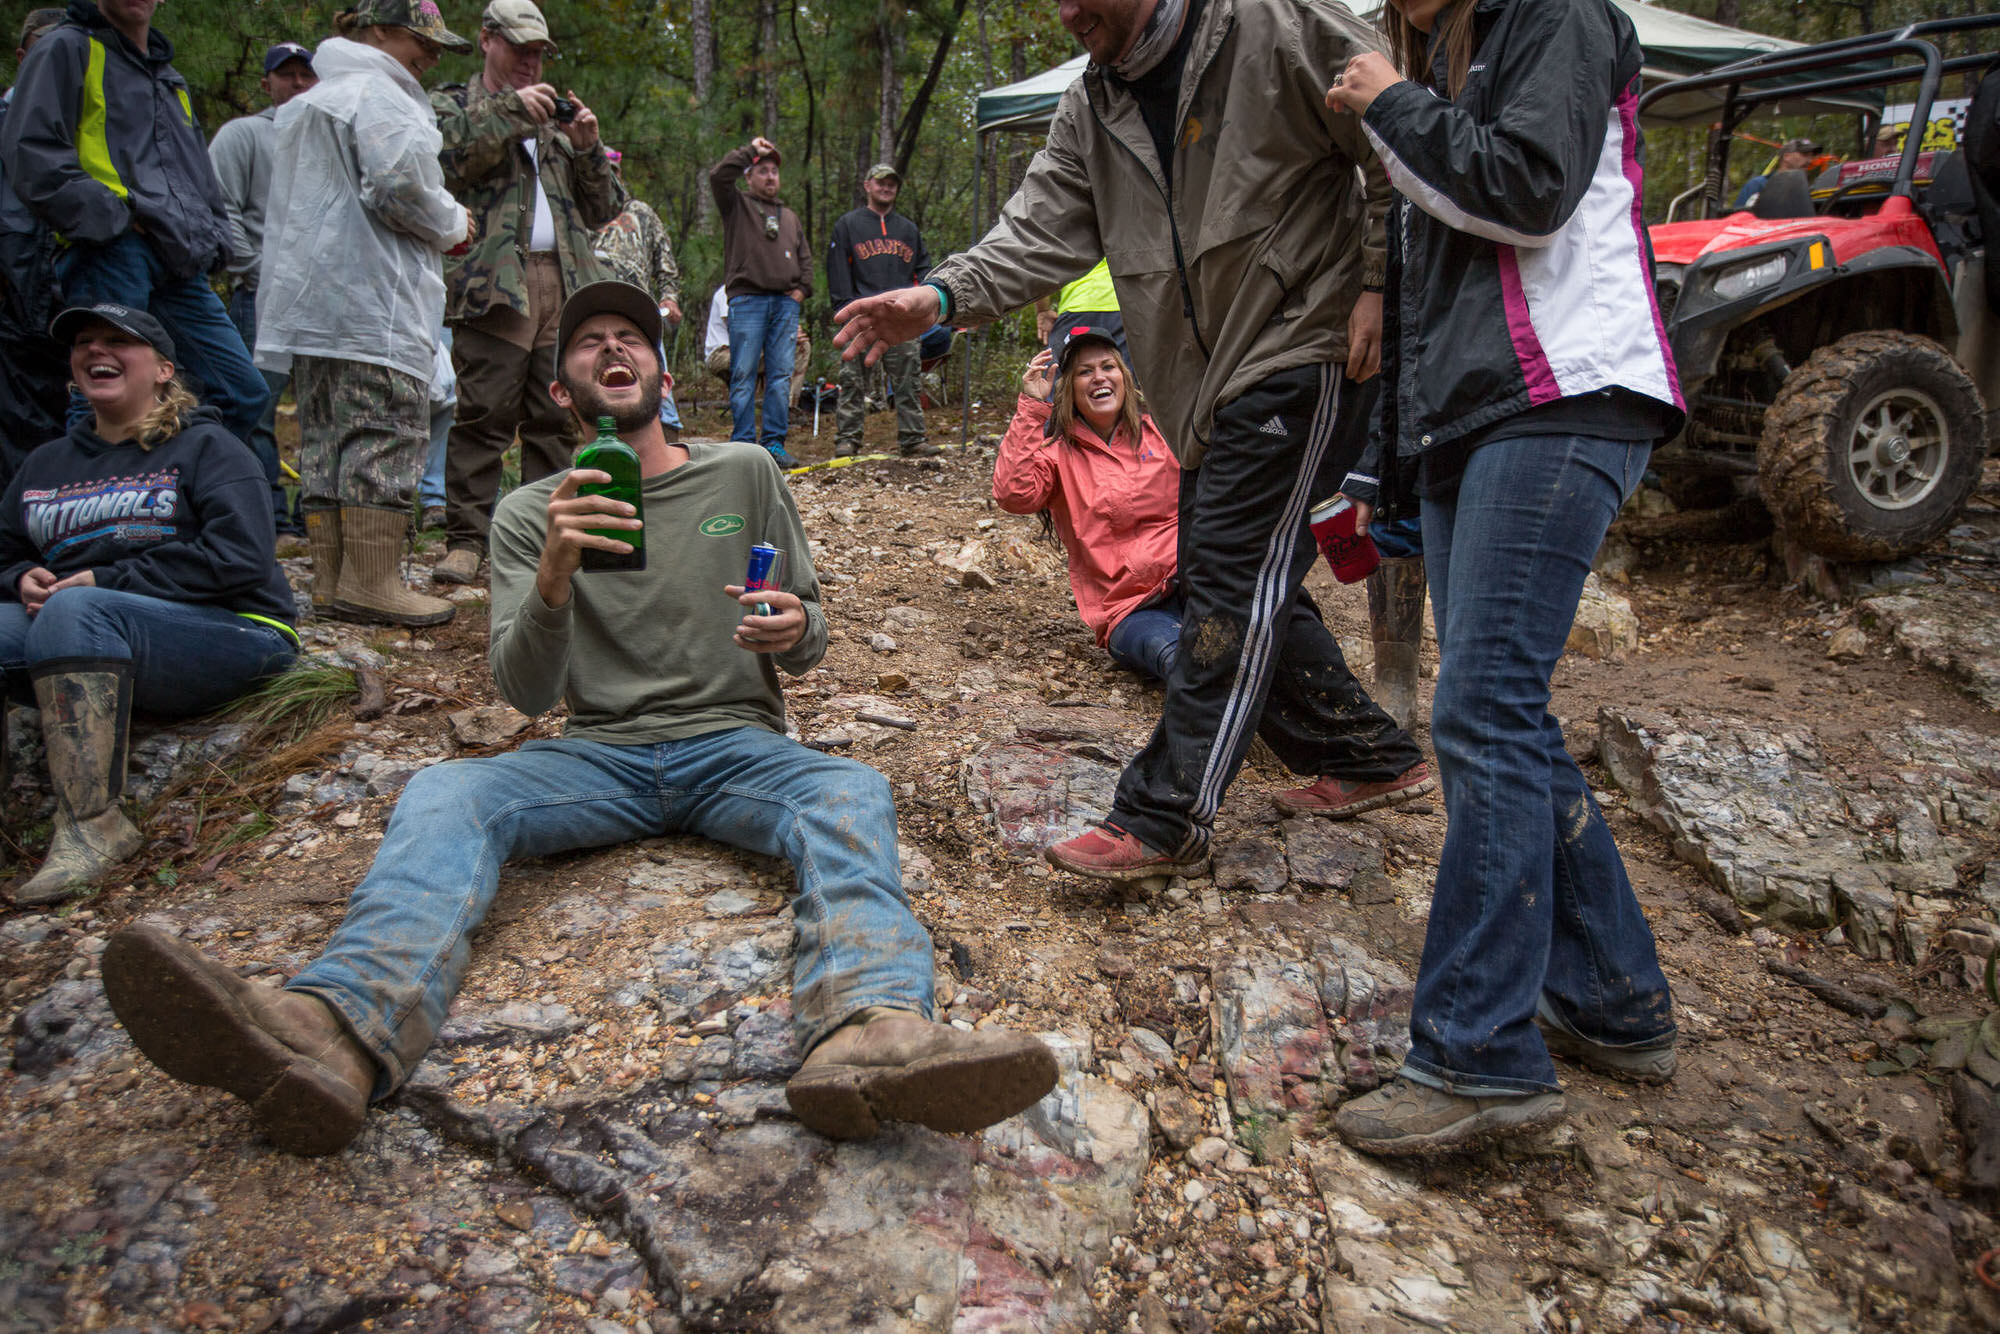 Rock Bouncing fans drinking booze in Arkansas, photographed for Car and Driver Magazine